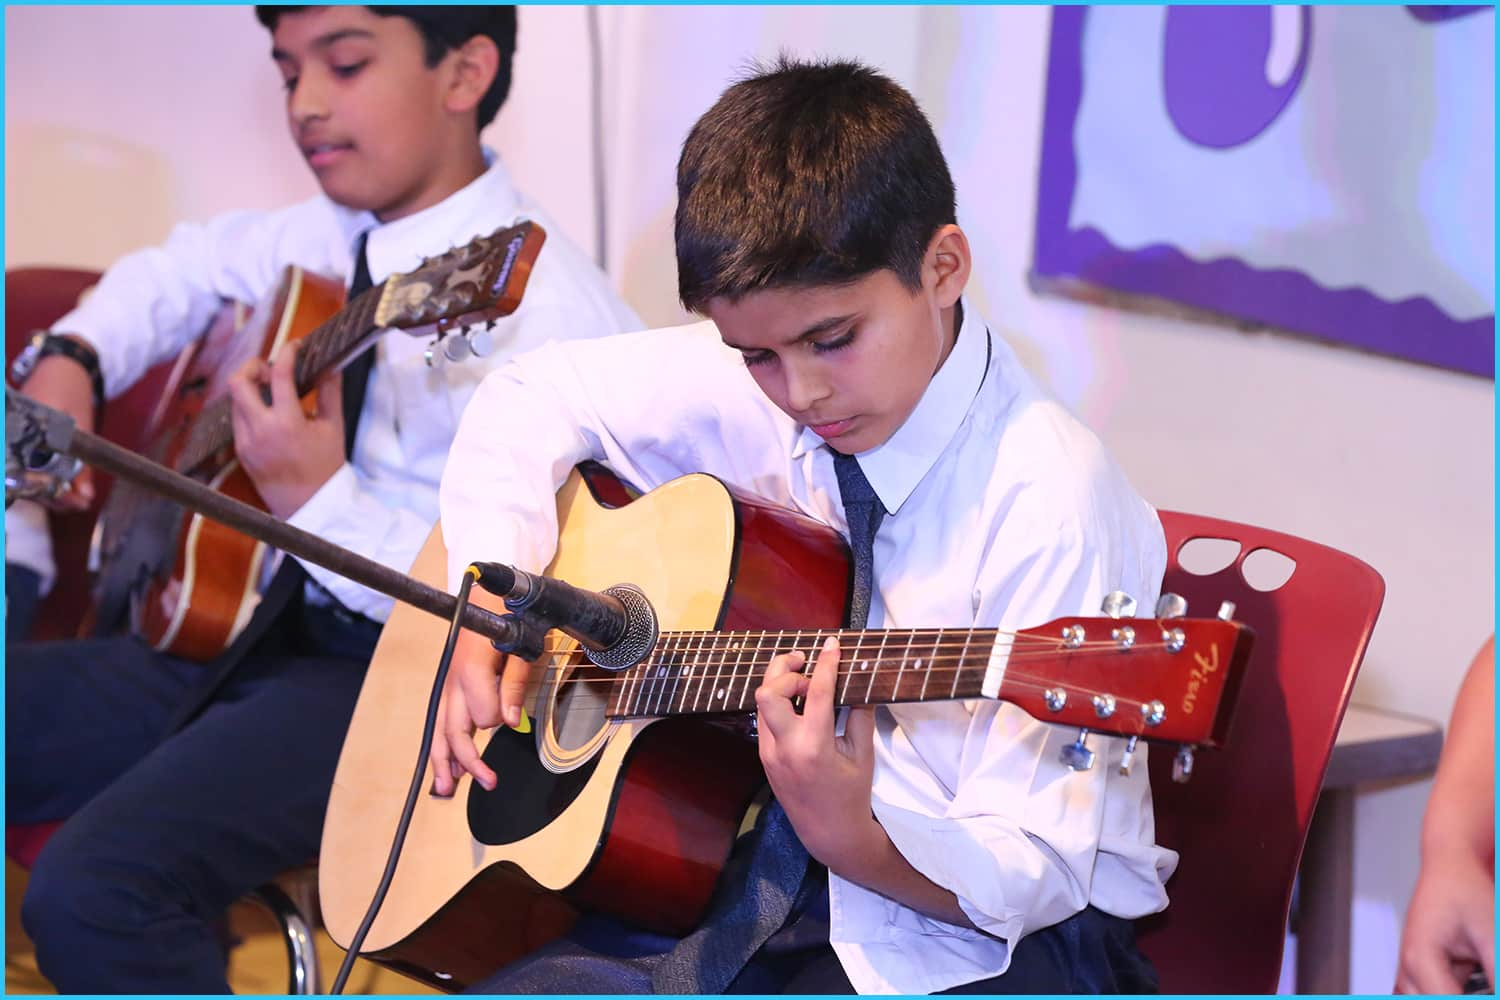 Kids learning Guitar, Piano and singing at Shan's School of Music sector 41,49,50,29 Gurgaon and Vasant Kunj, Delhi. Vasant Kunj - Aadyant School. GURGAON - the Sixth Element and Klay Prep School